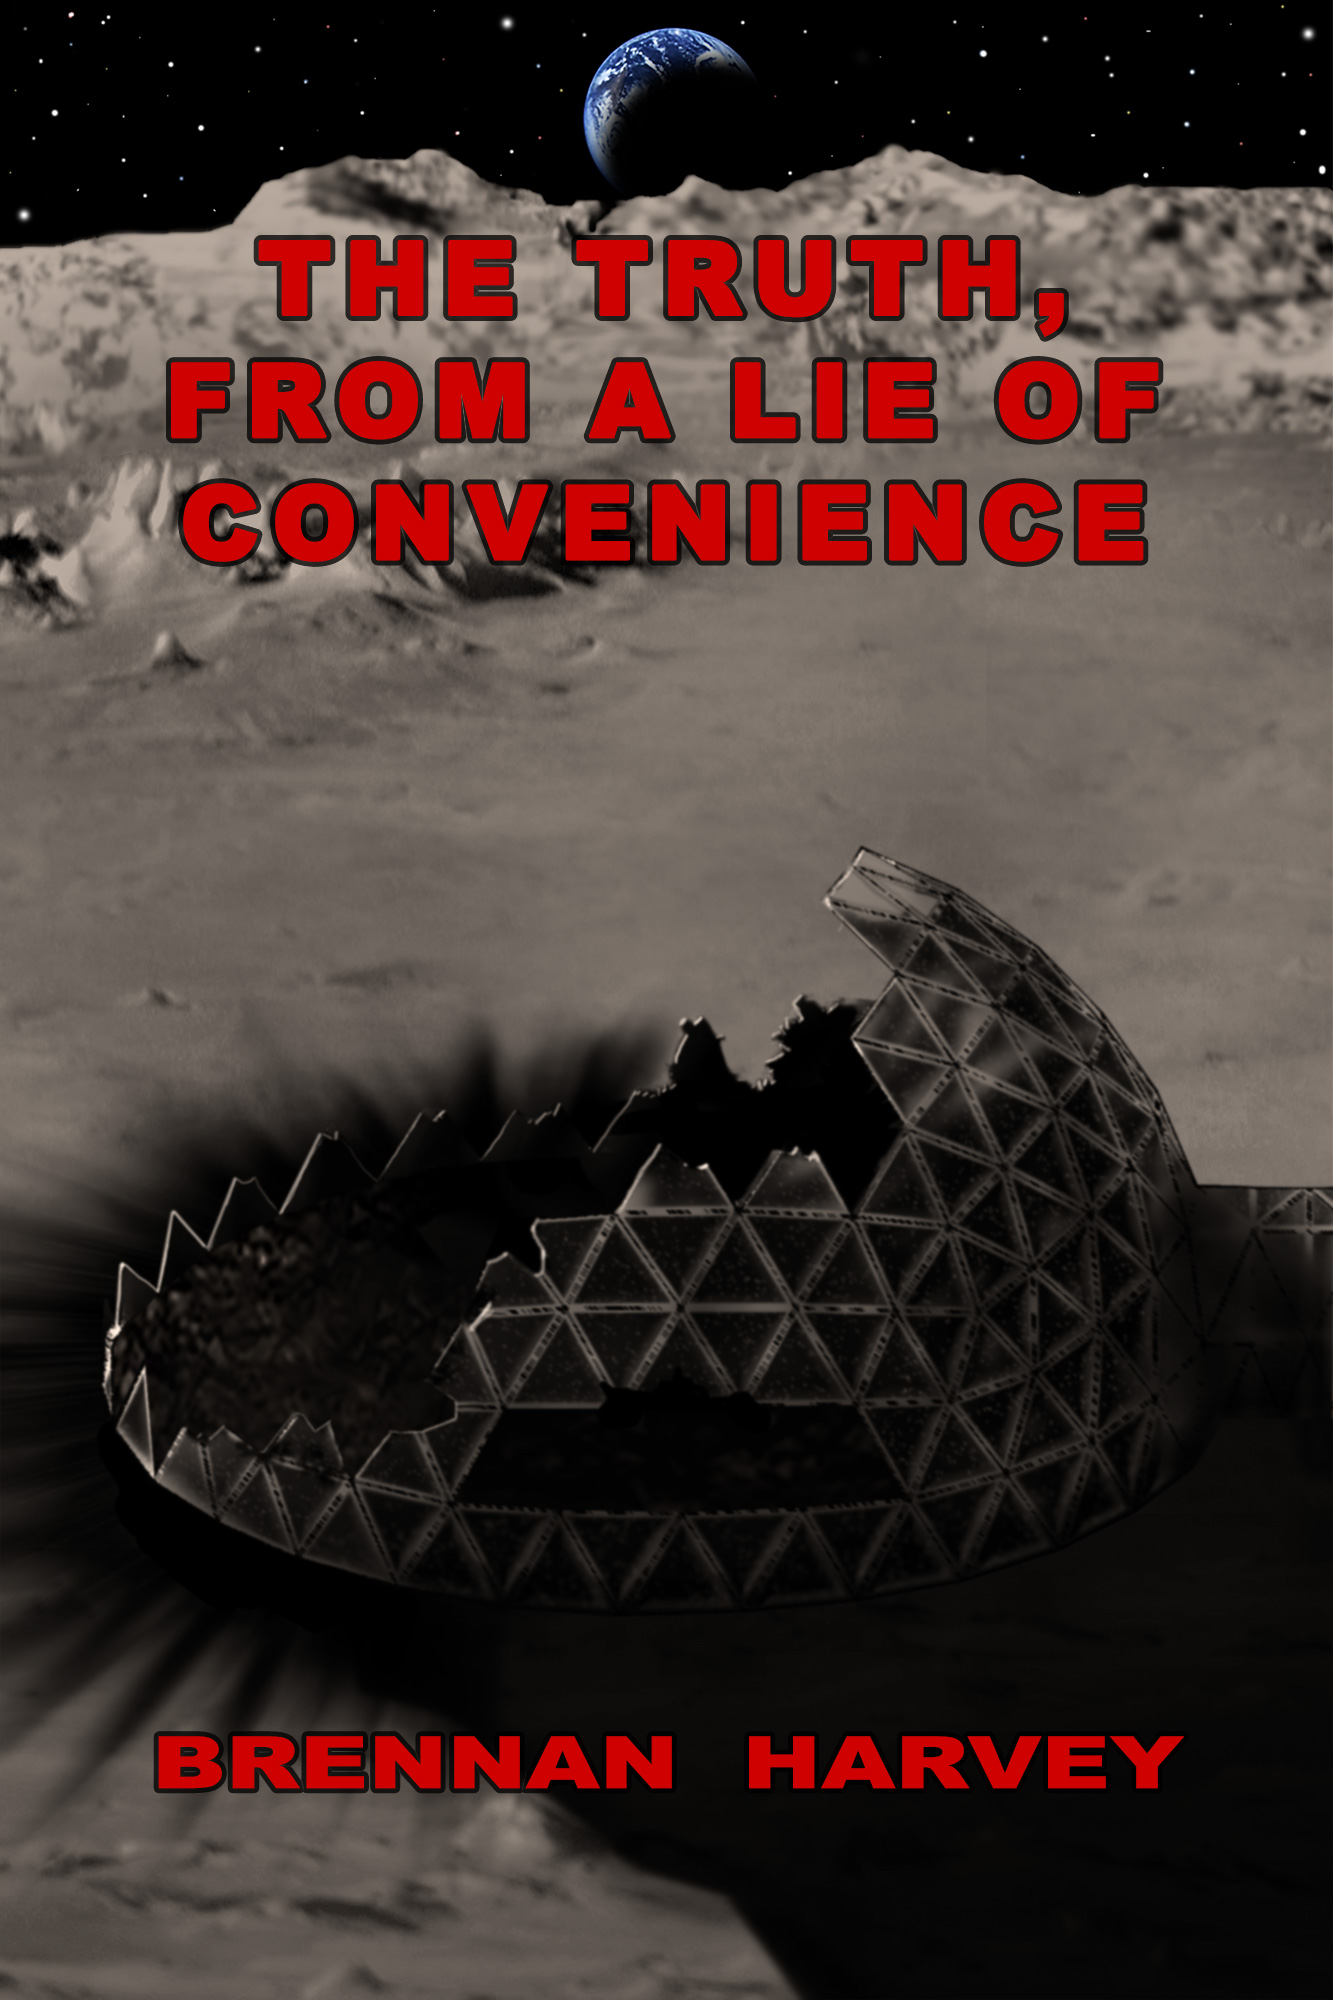 The Truth From a Lie of Convenience